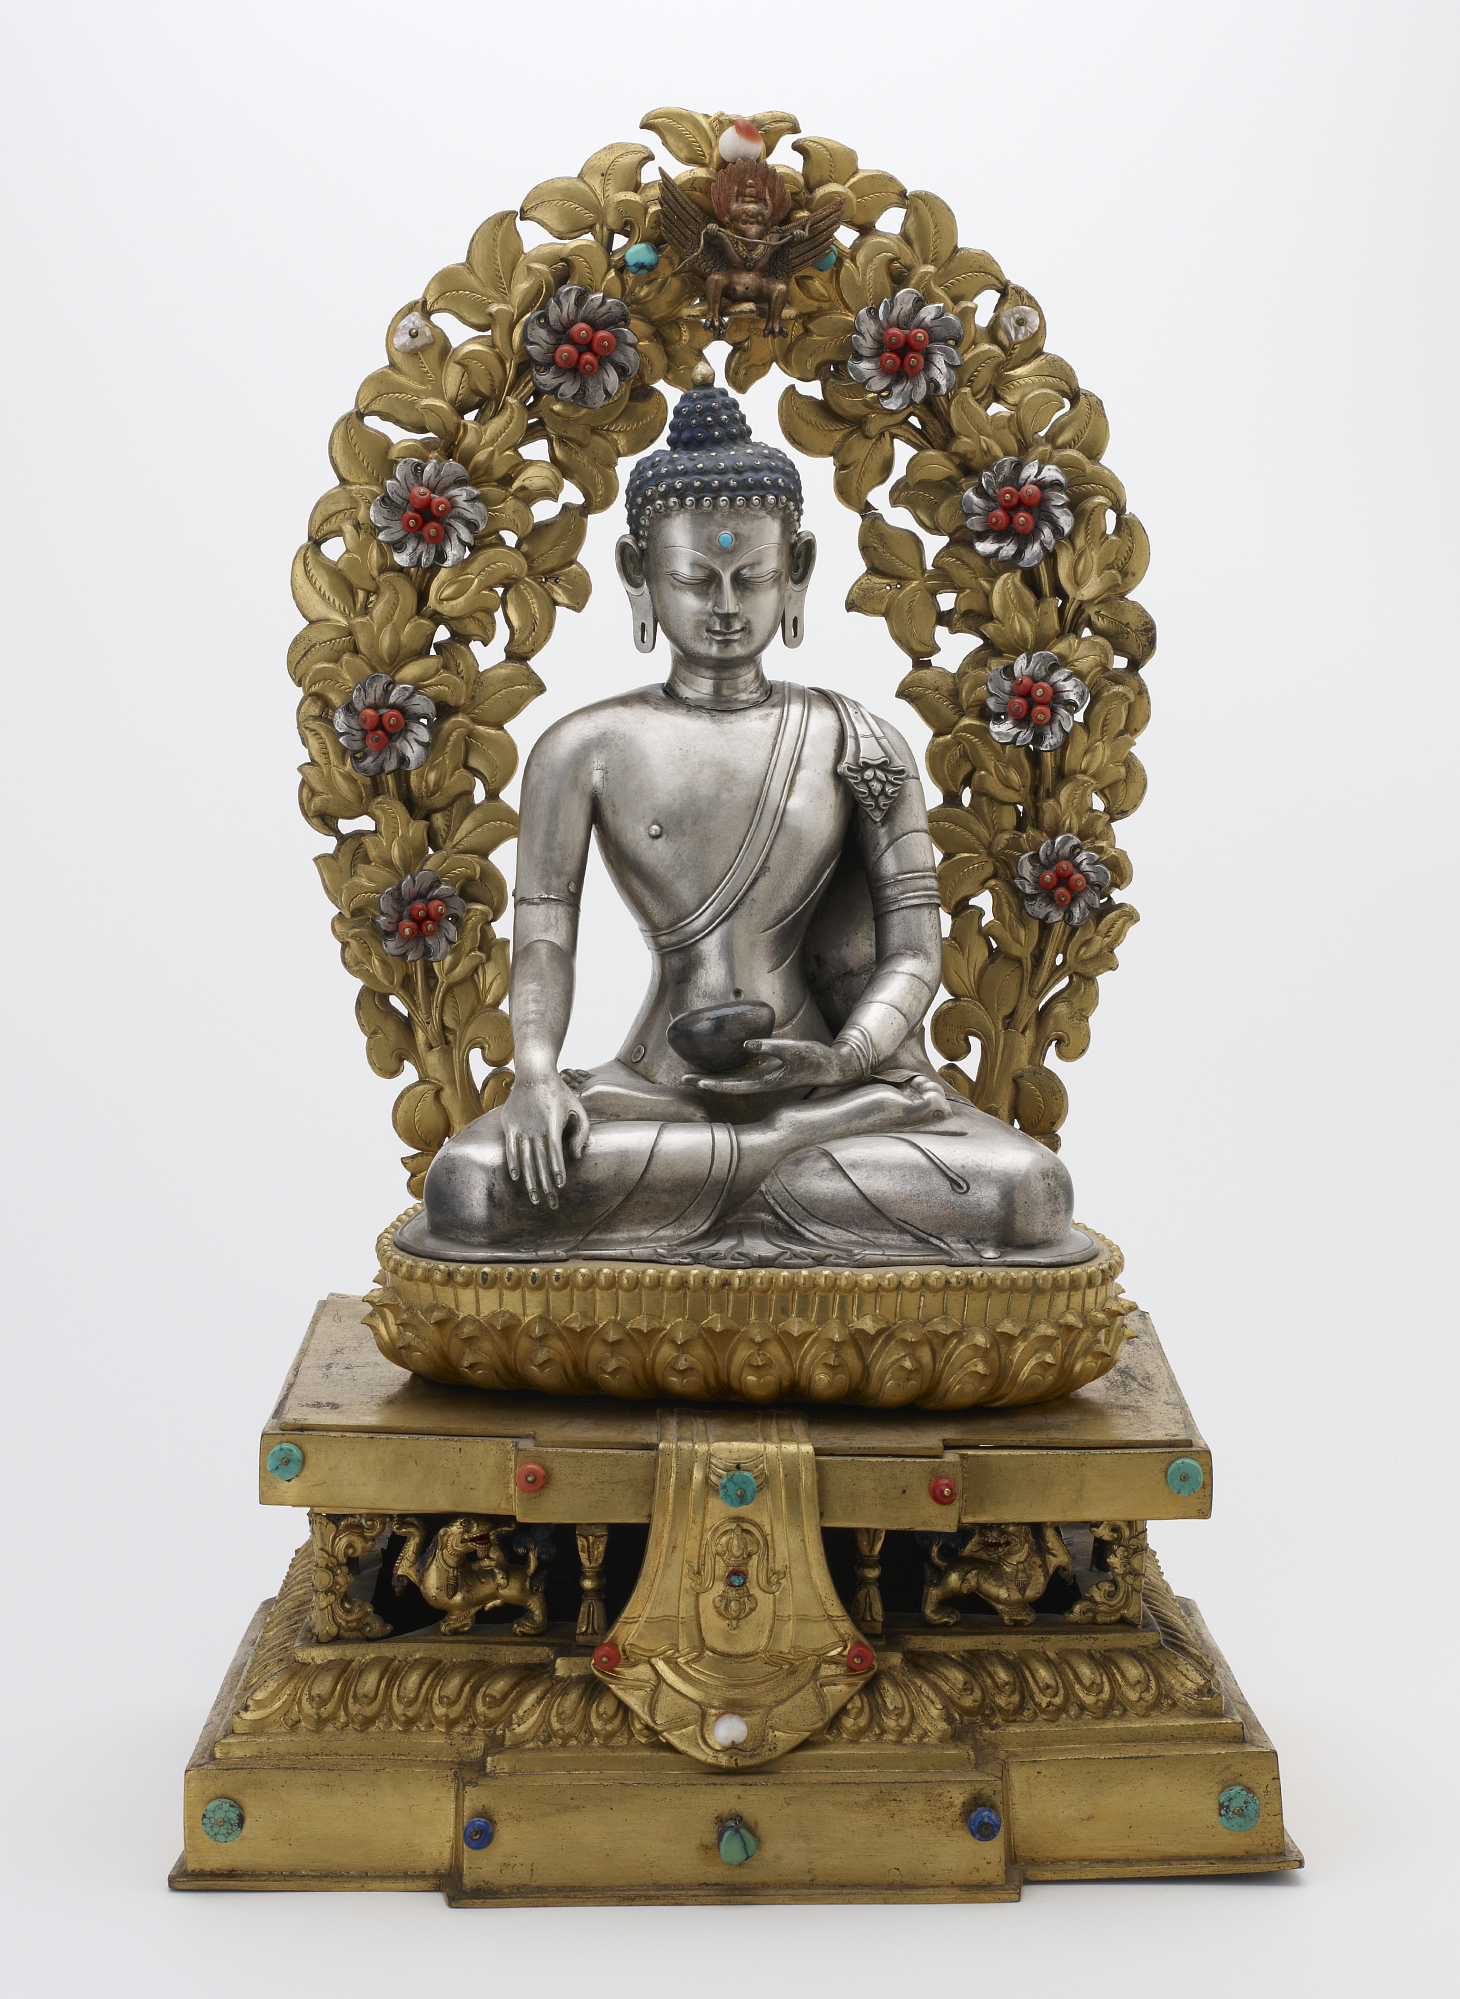 Shakyamuni Buddha in a full shrine